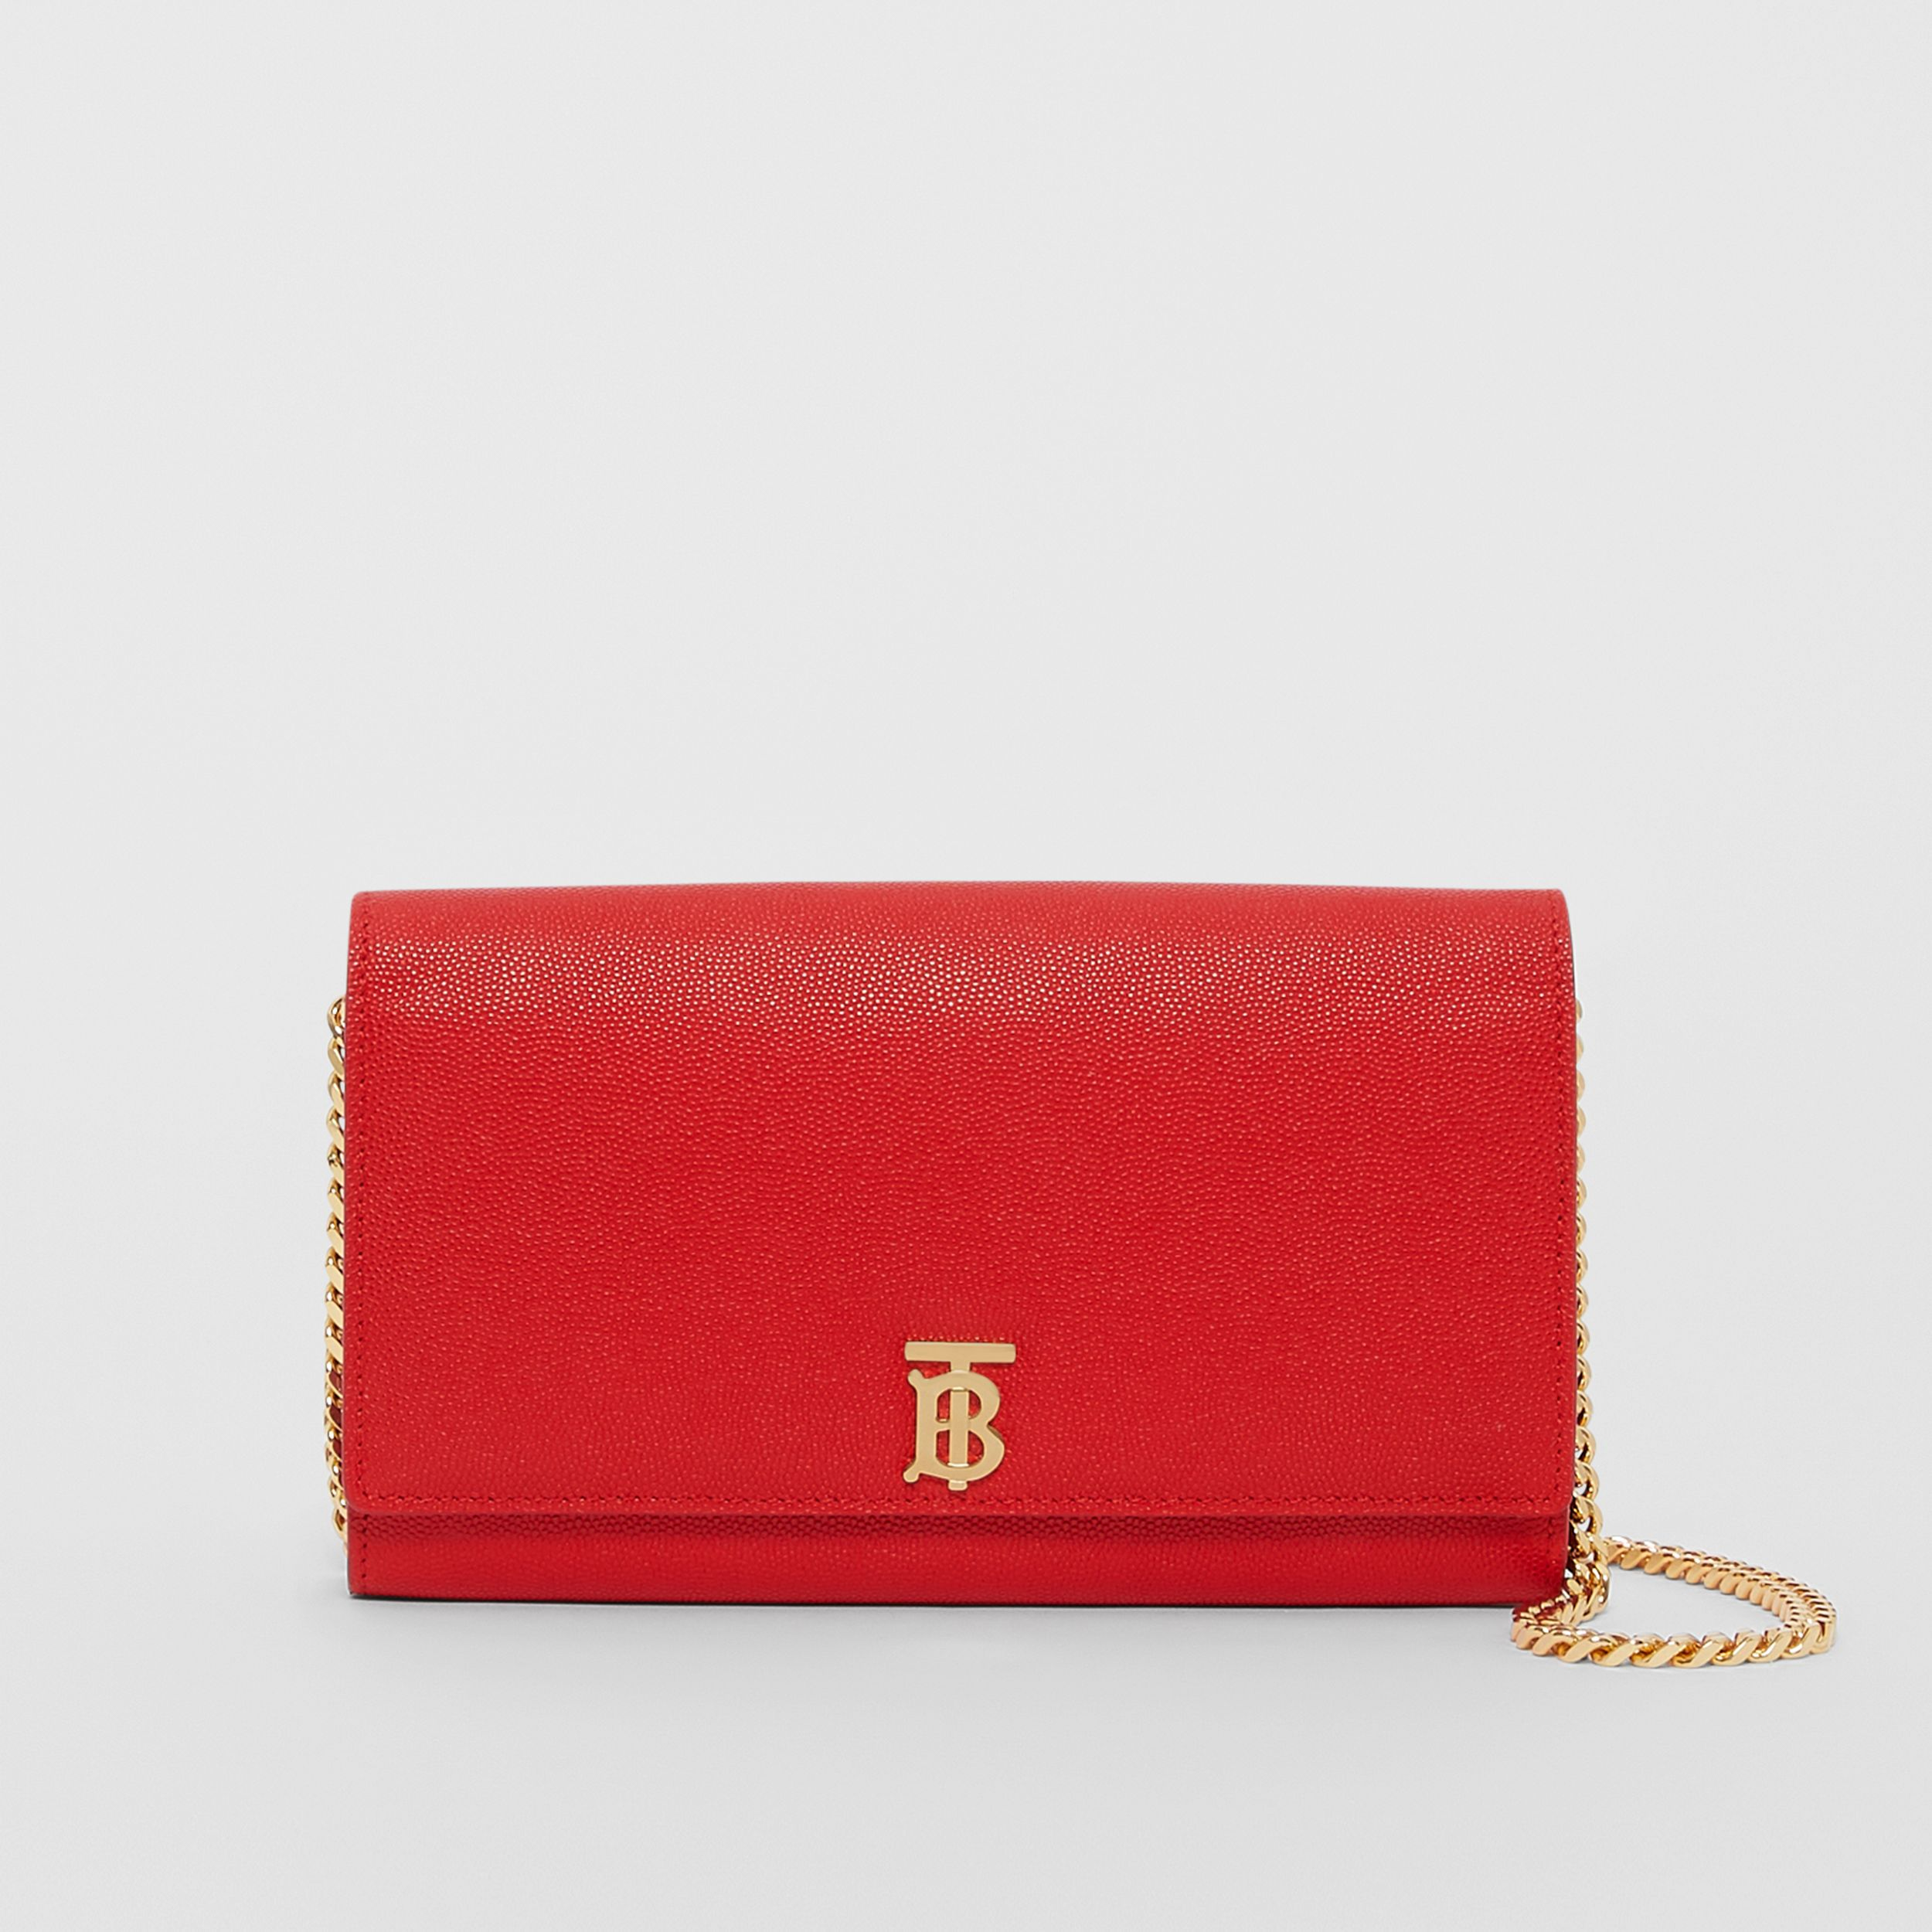 Monogram Motif Leather Wallet with Detachable Strap in Bright Red - Women | Burberry - 1